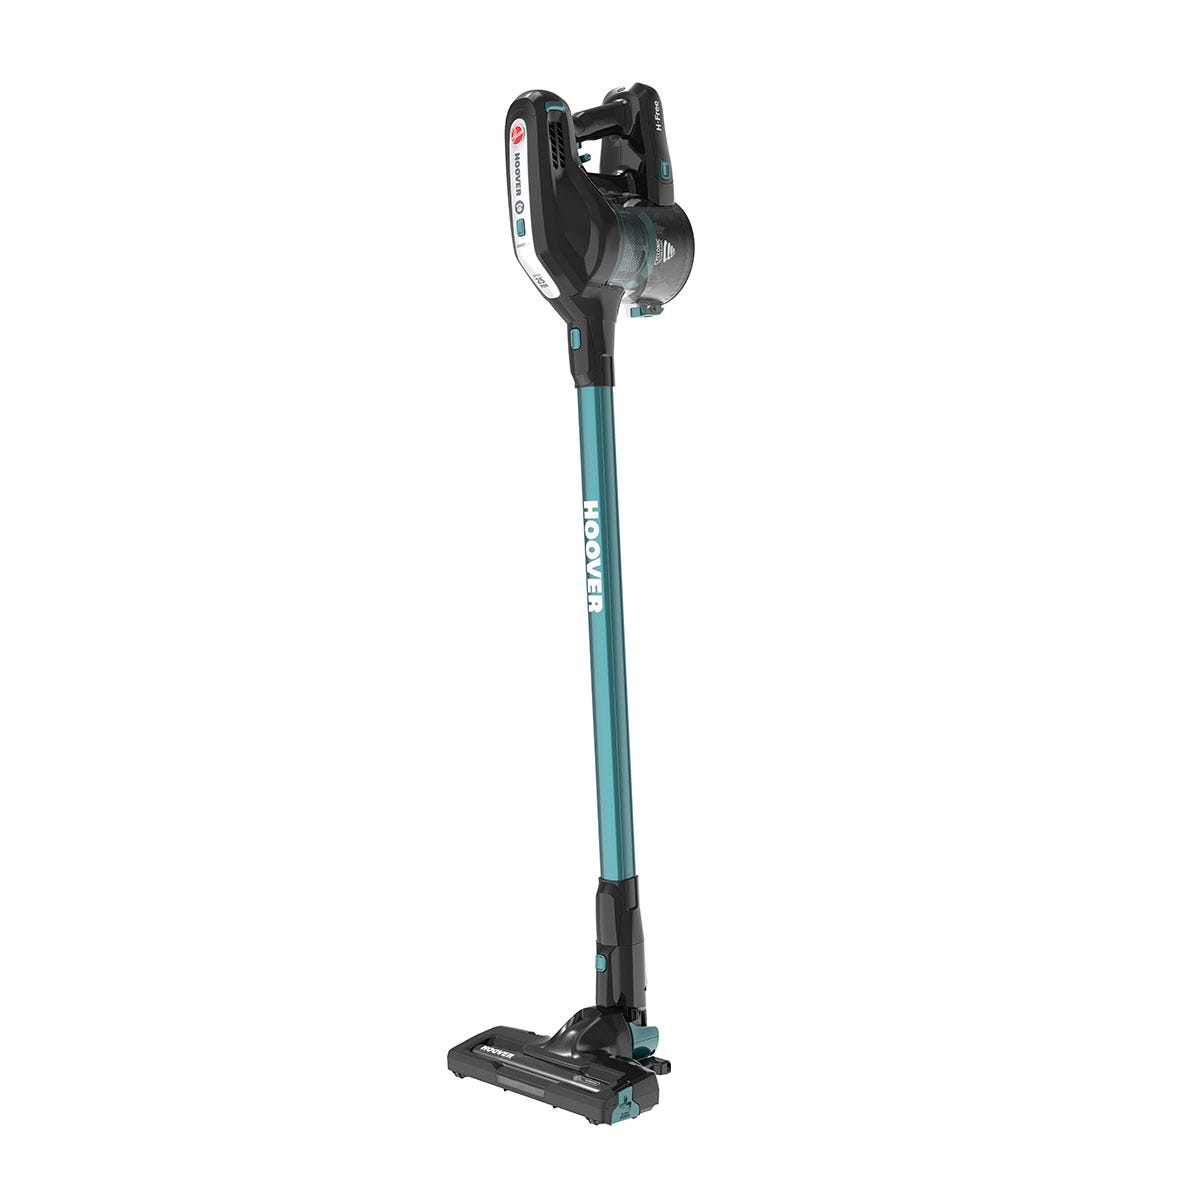 Hoover HF18CPT H-Free Multifunctional Cordless Vacuum - Black & Turquoise